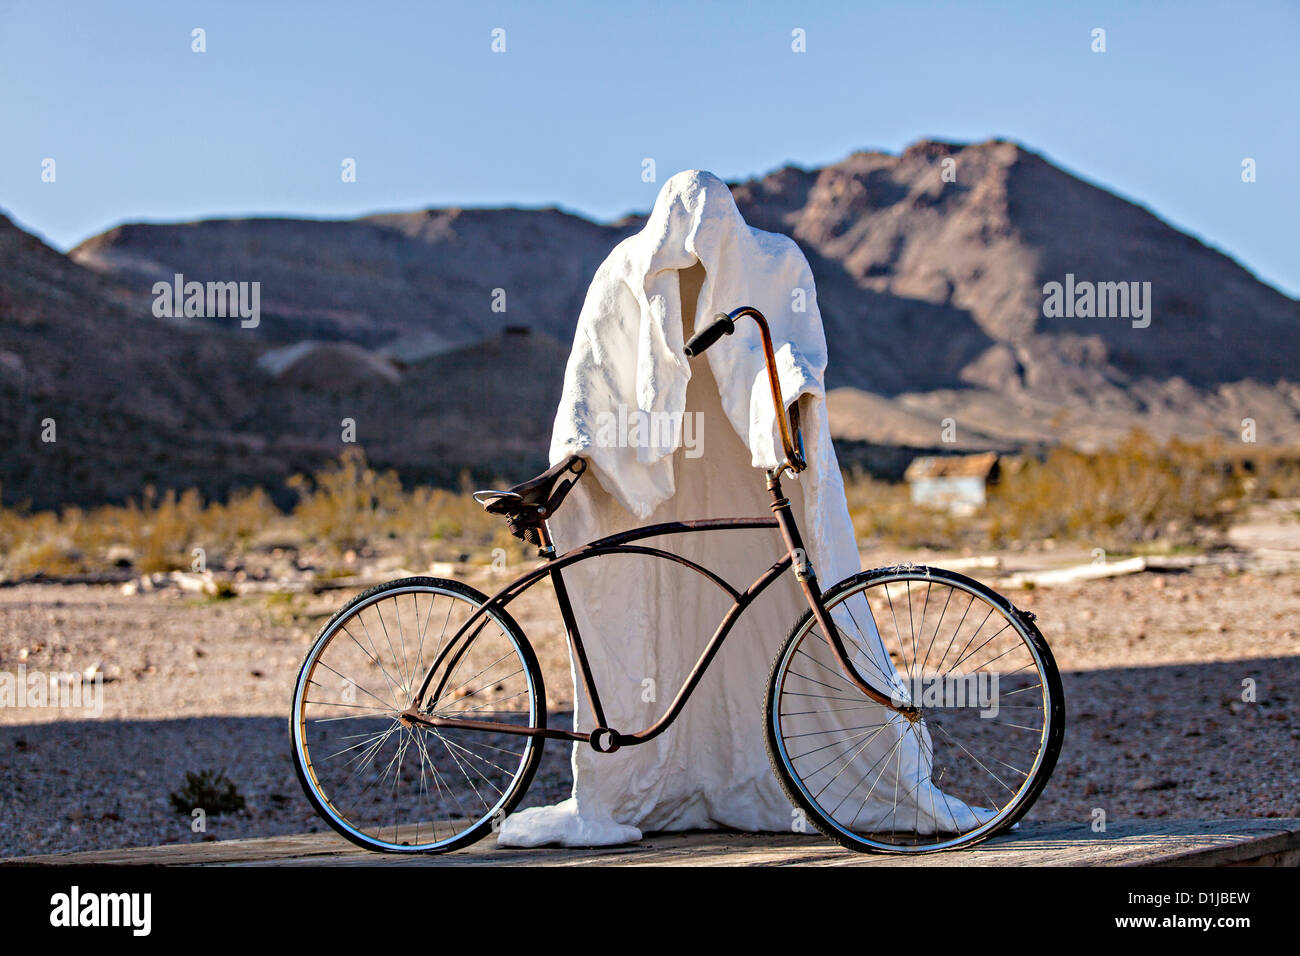 Public sculpture called Ghost Rider at the open air museum in Goldwell, NV. - Stock Image